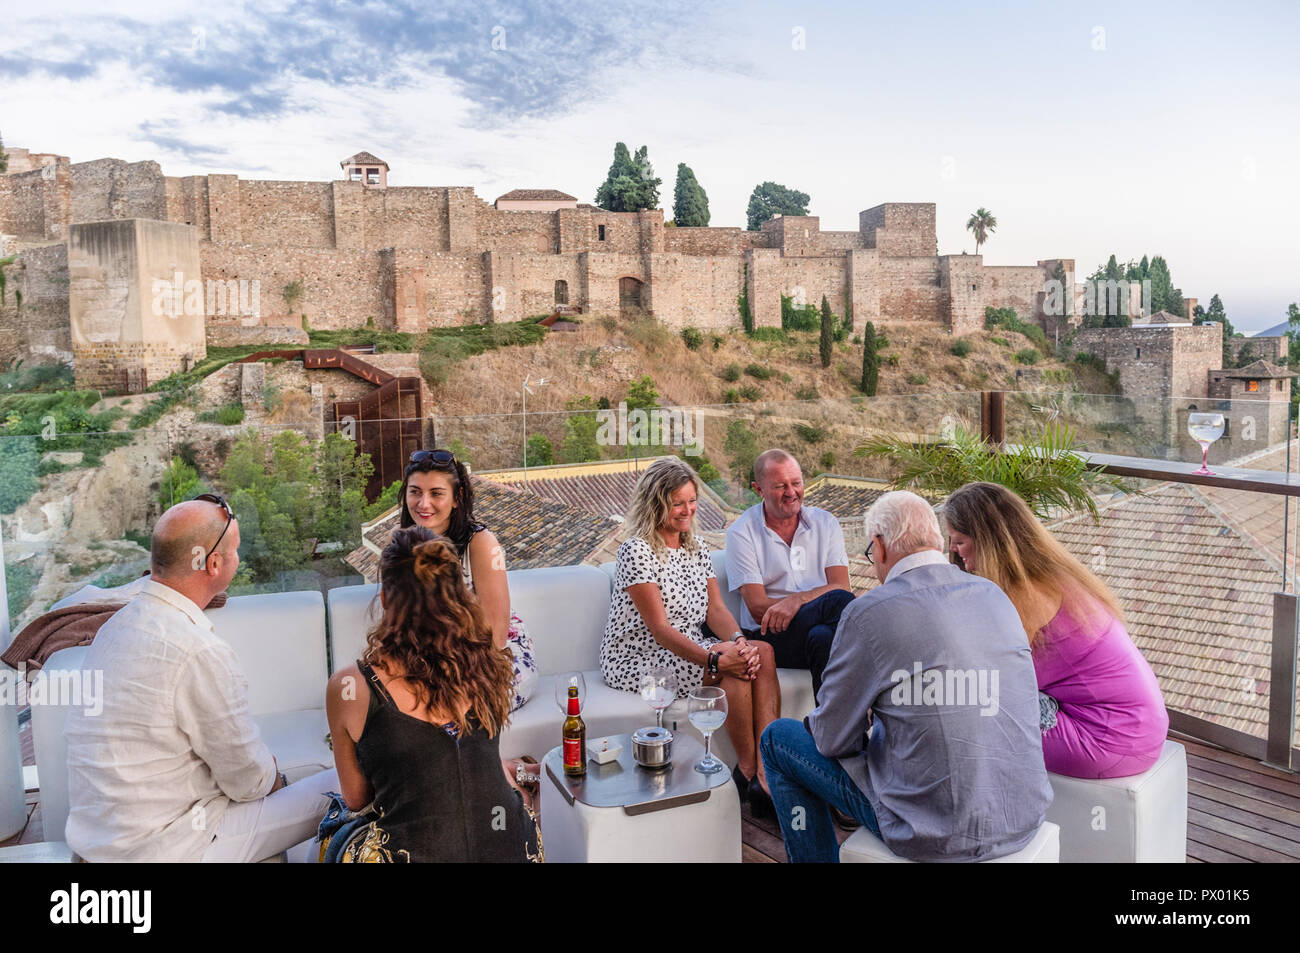 People With Alcazaba Castle In Background At The Rooftop